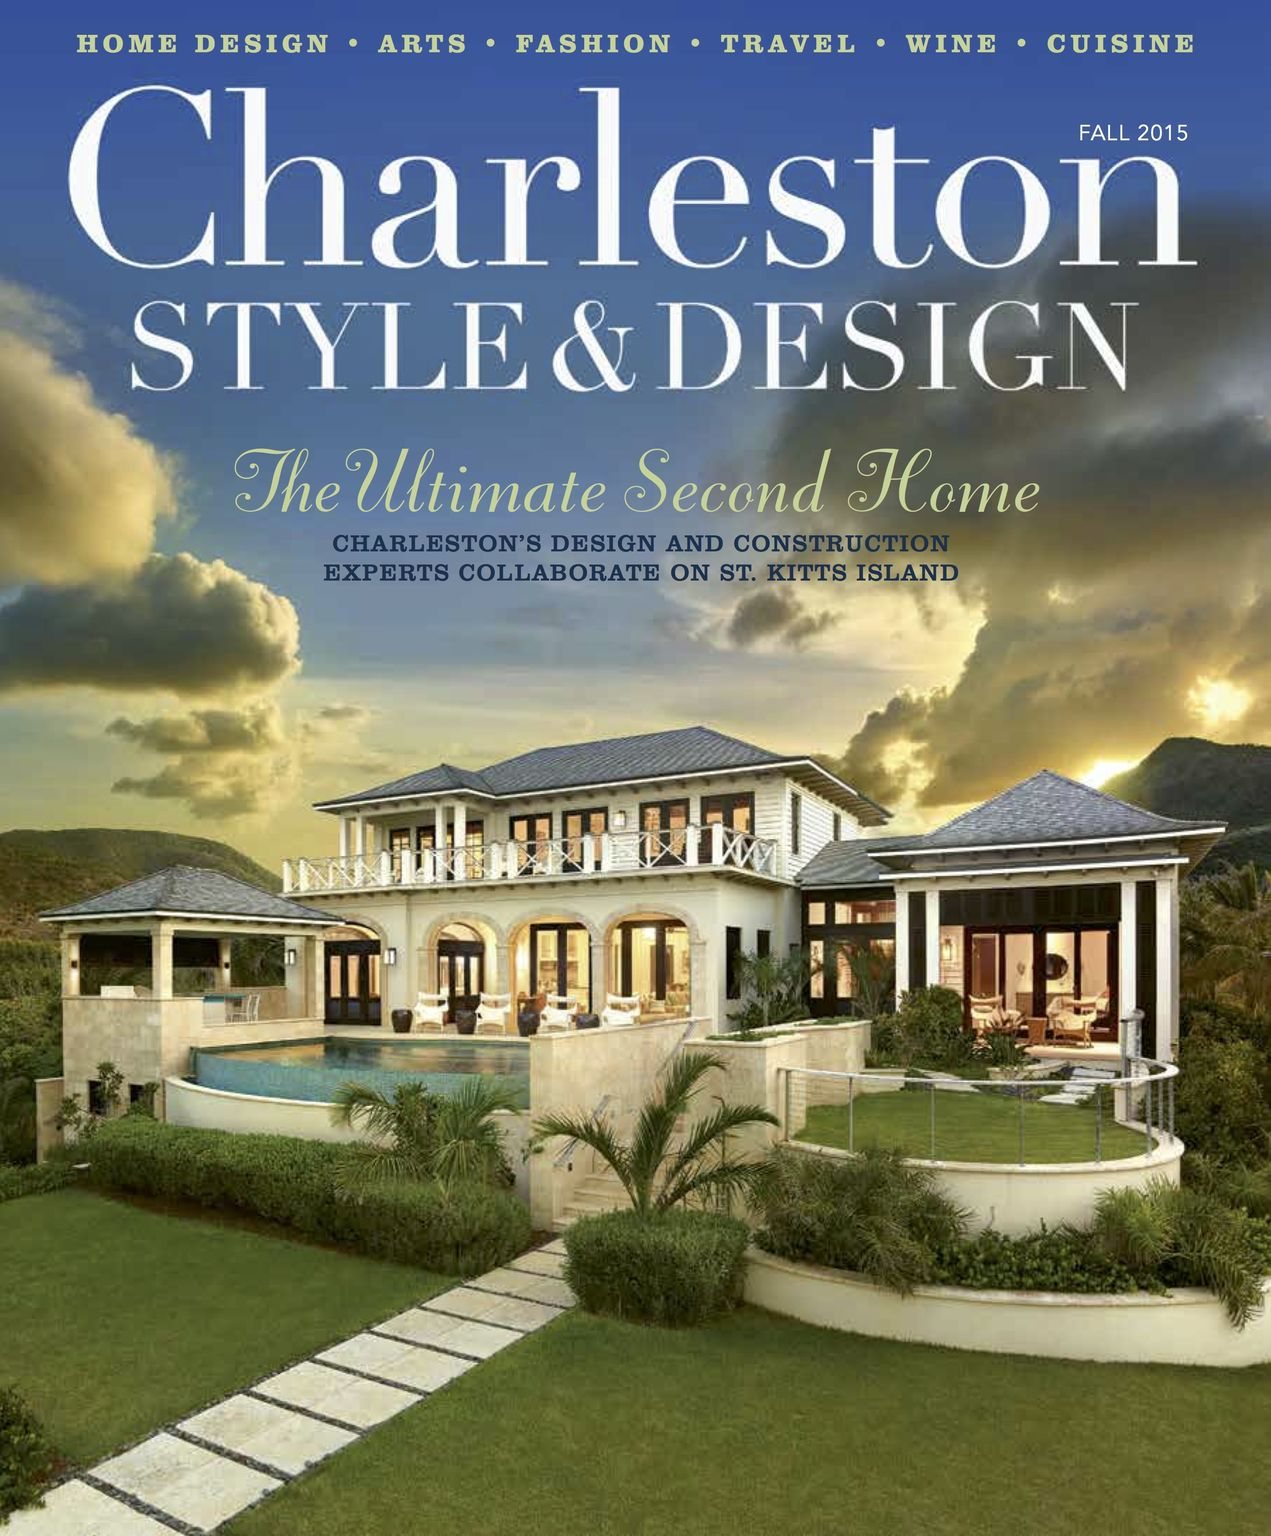 Charleston Style & Design Fall 2015